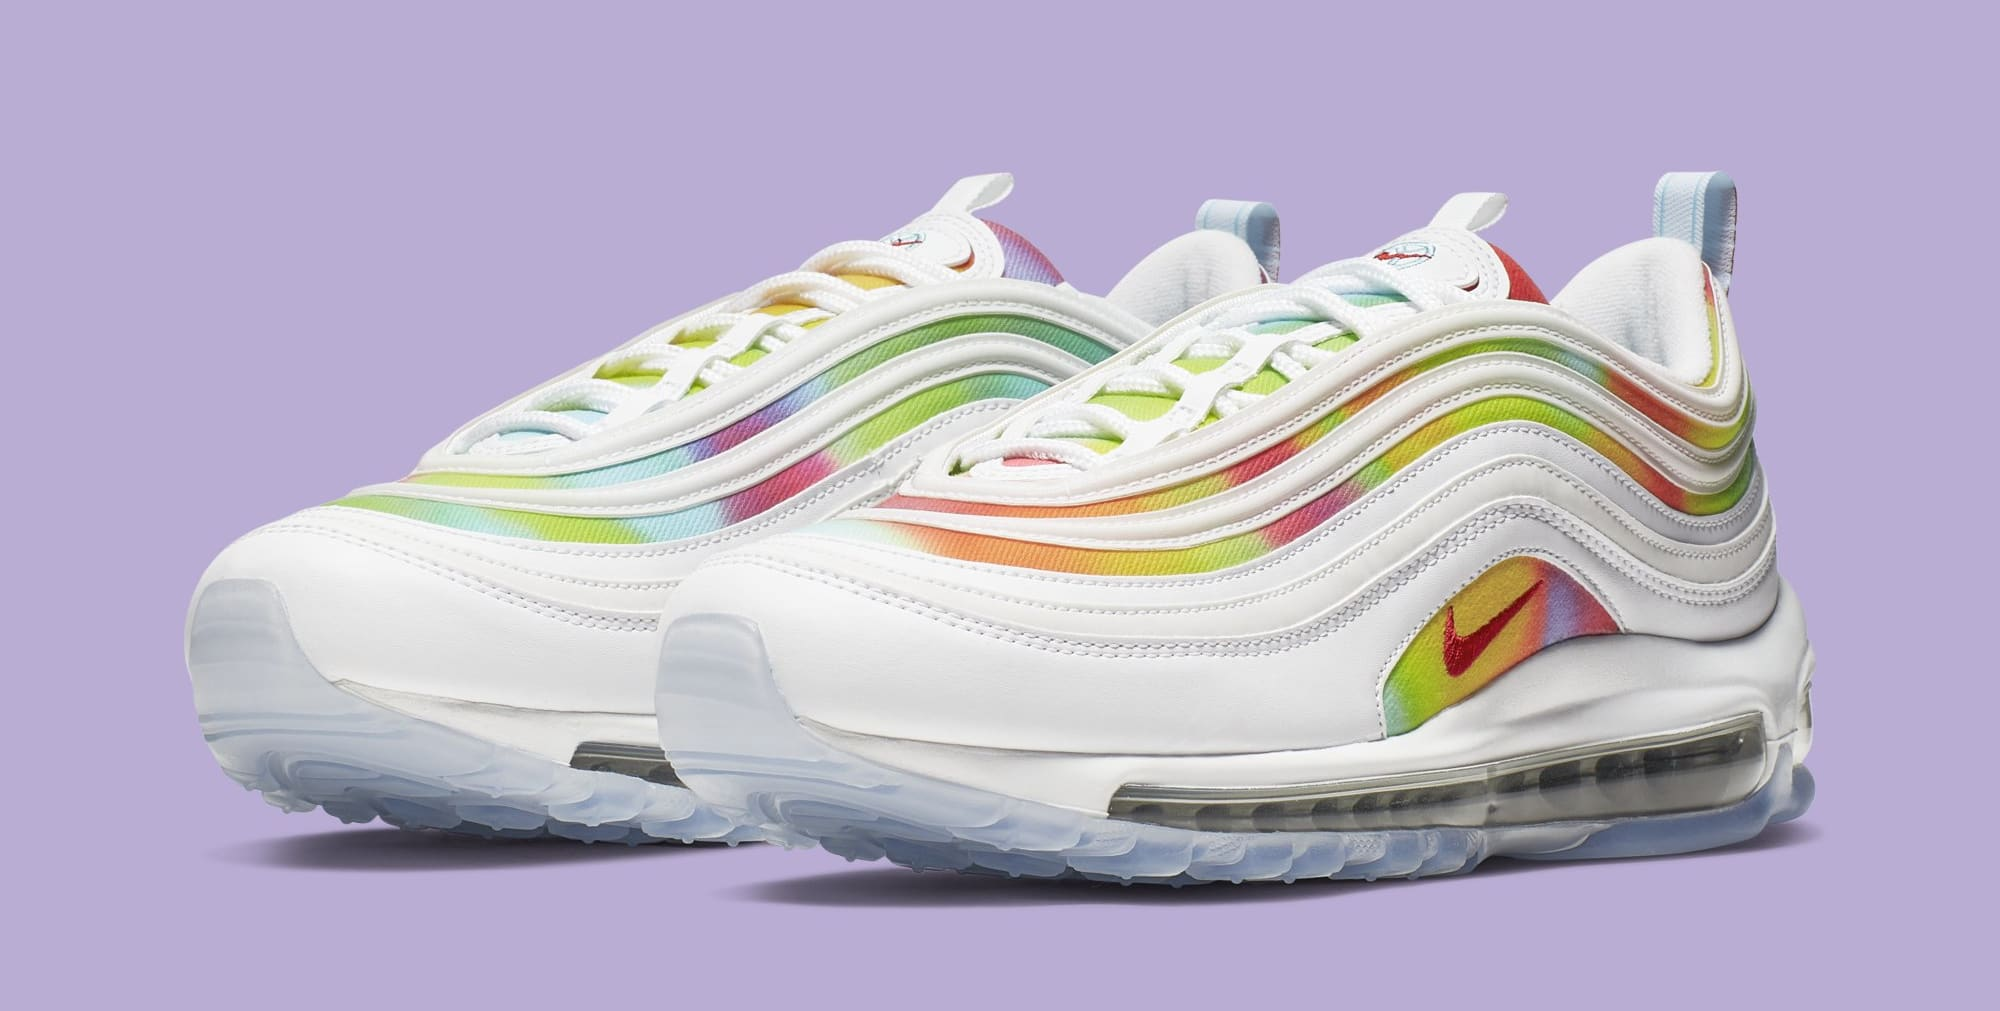 Nike Air Max 97 'Tie-Dye/Chicago' CK0839-100 (Pair)